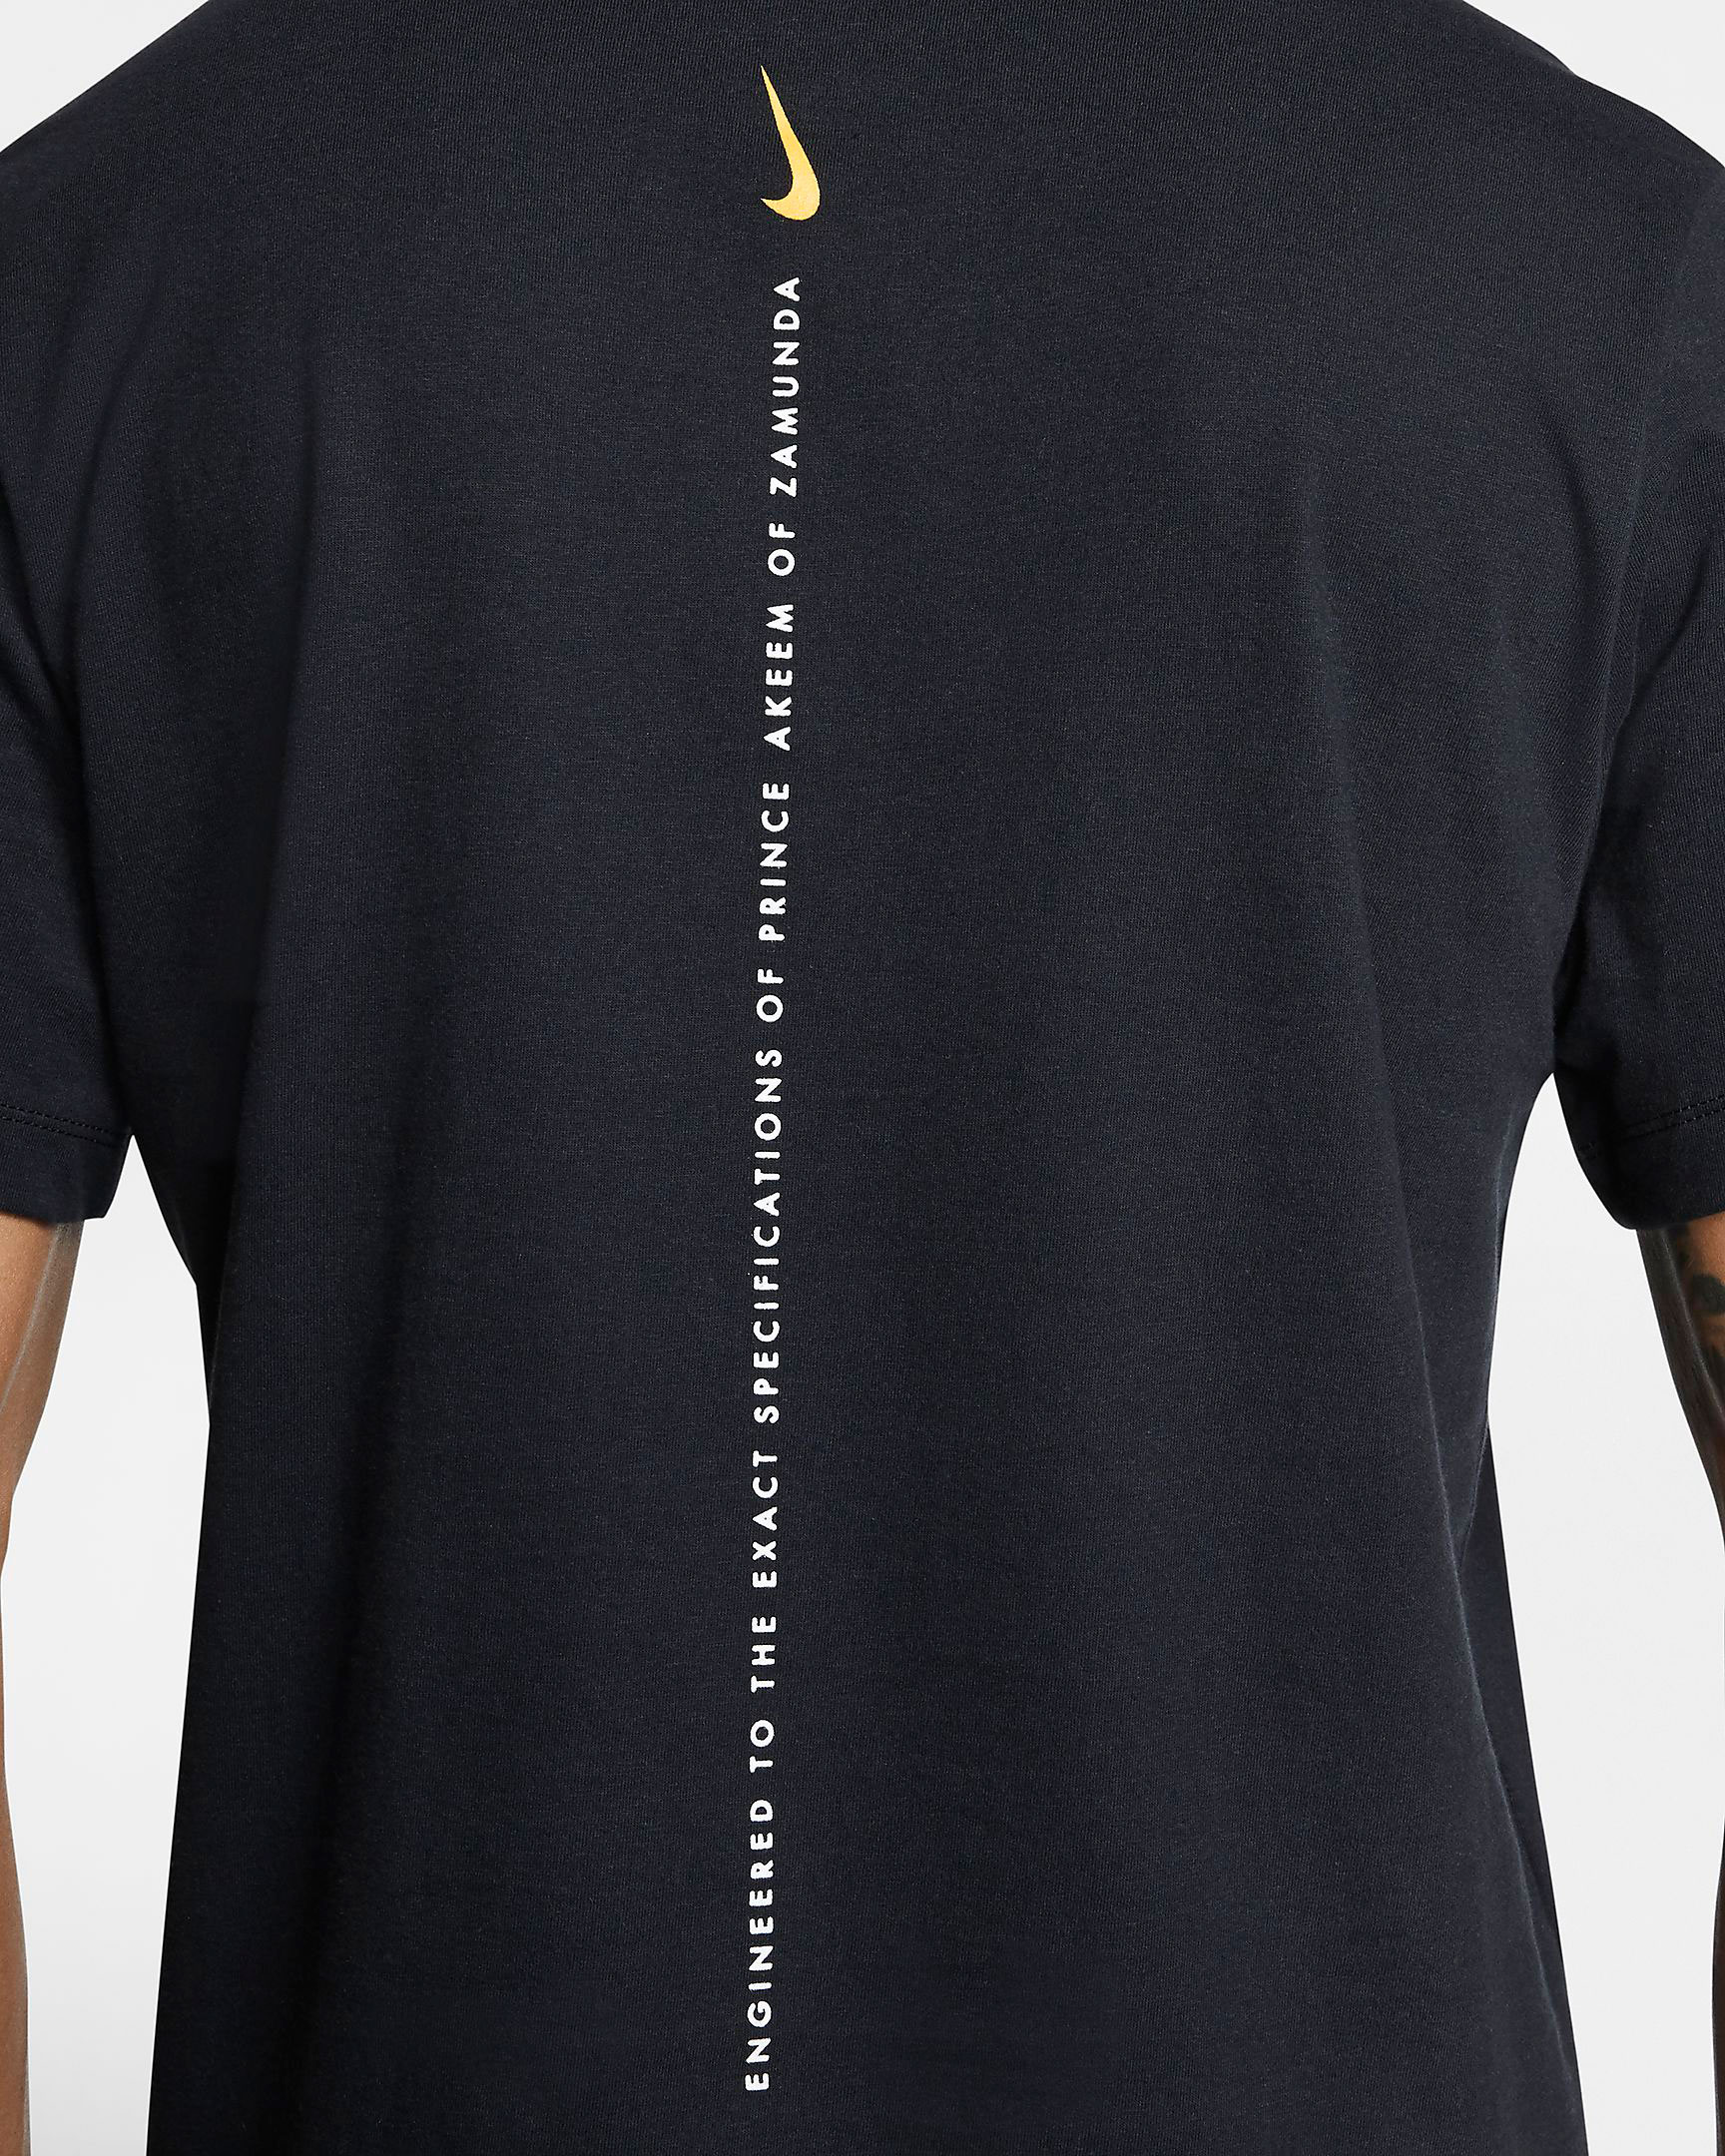 nike-zoom-freak-1-employee-of-the-month-shirt-black-2